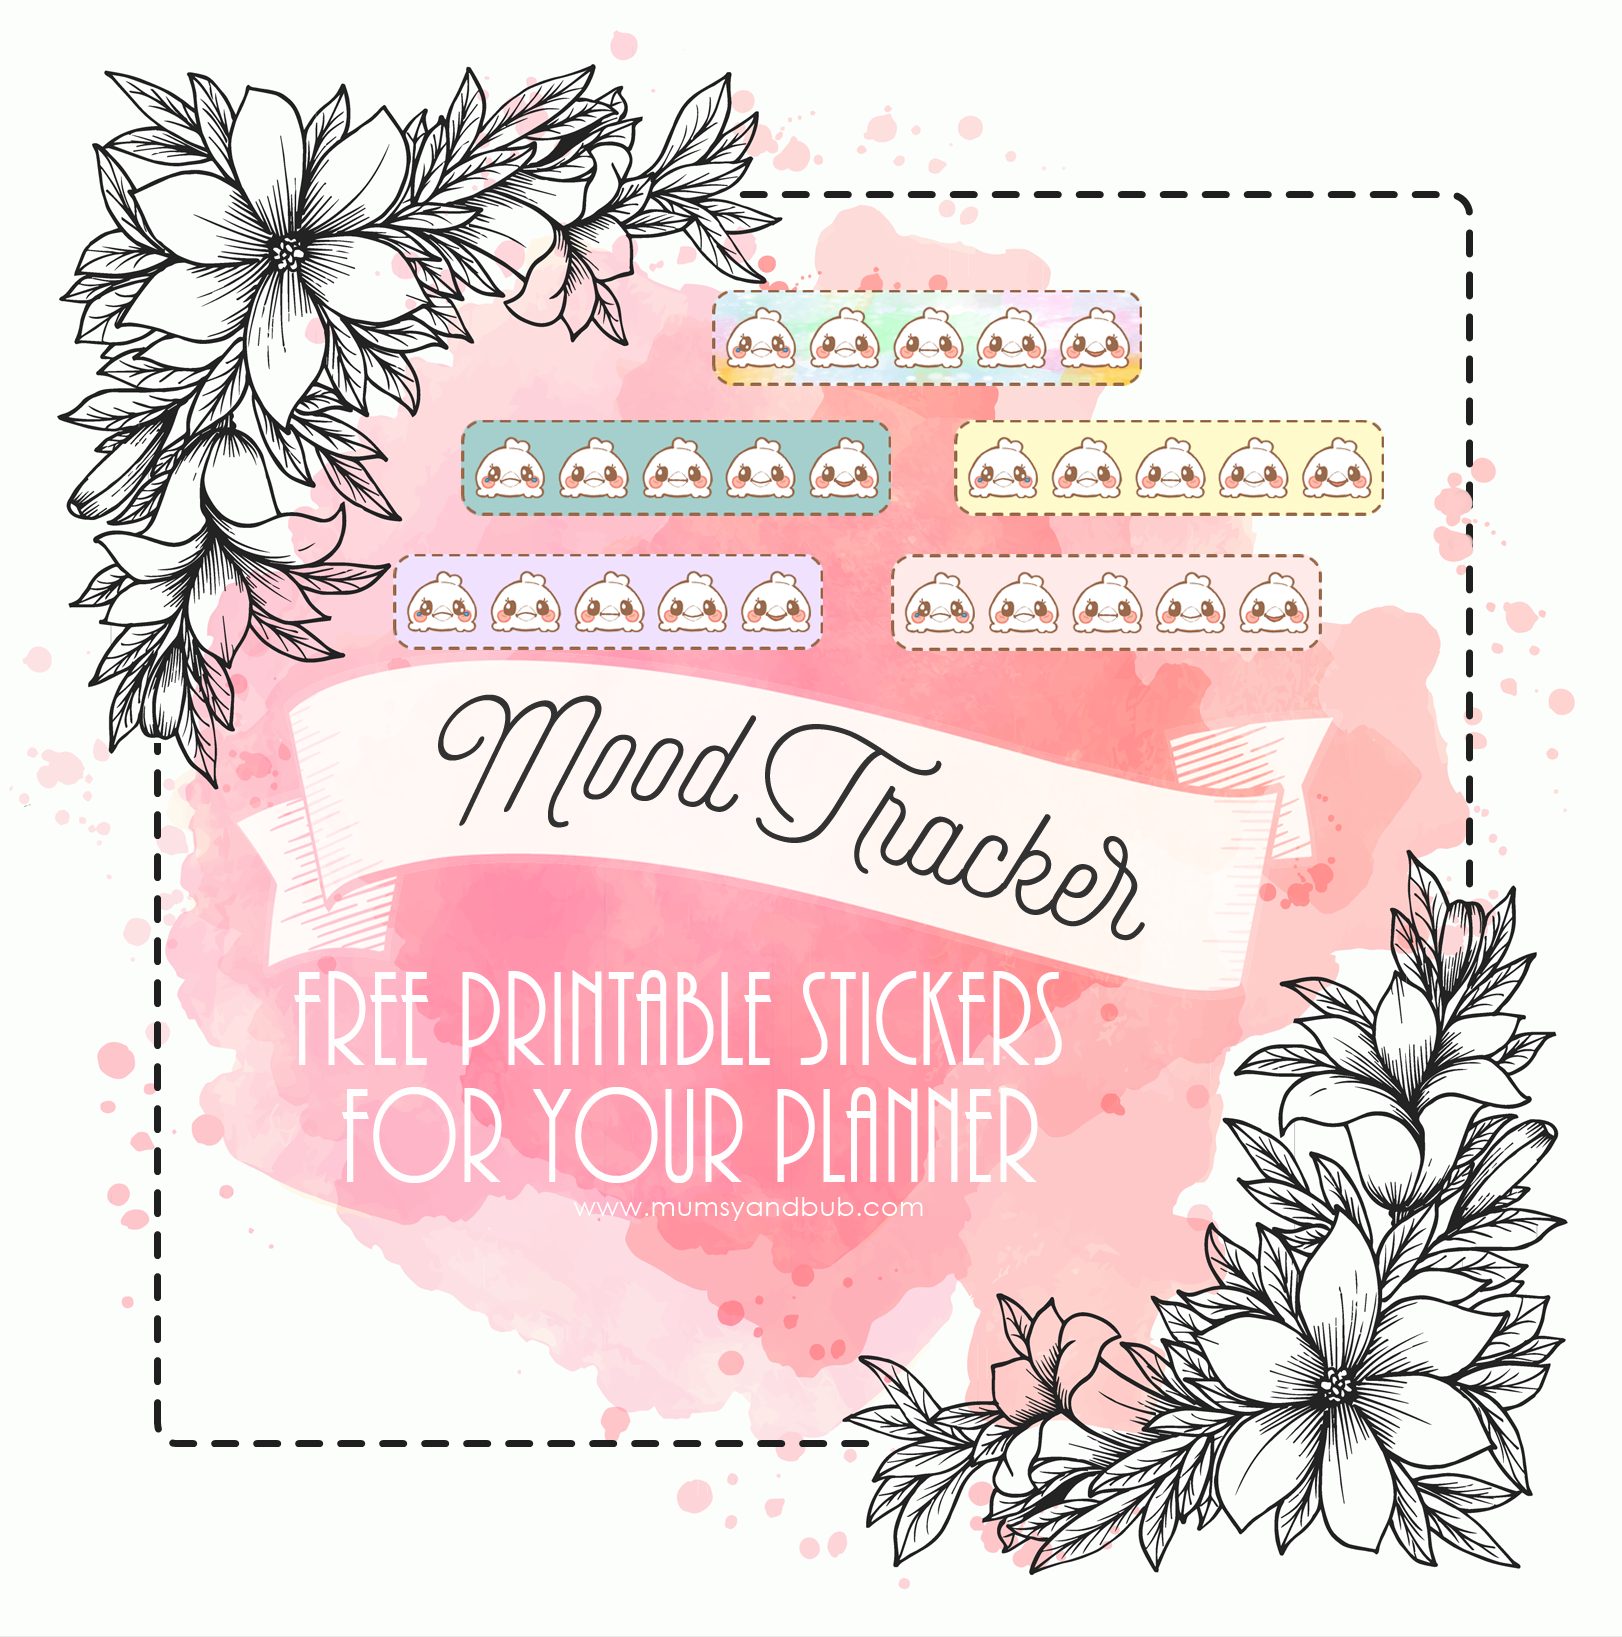 image relating to Printable Mood Tracker titled Temper Tracker - Cost-free Printable Stickers for your Planner